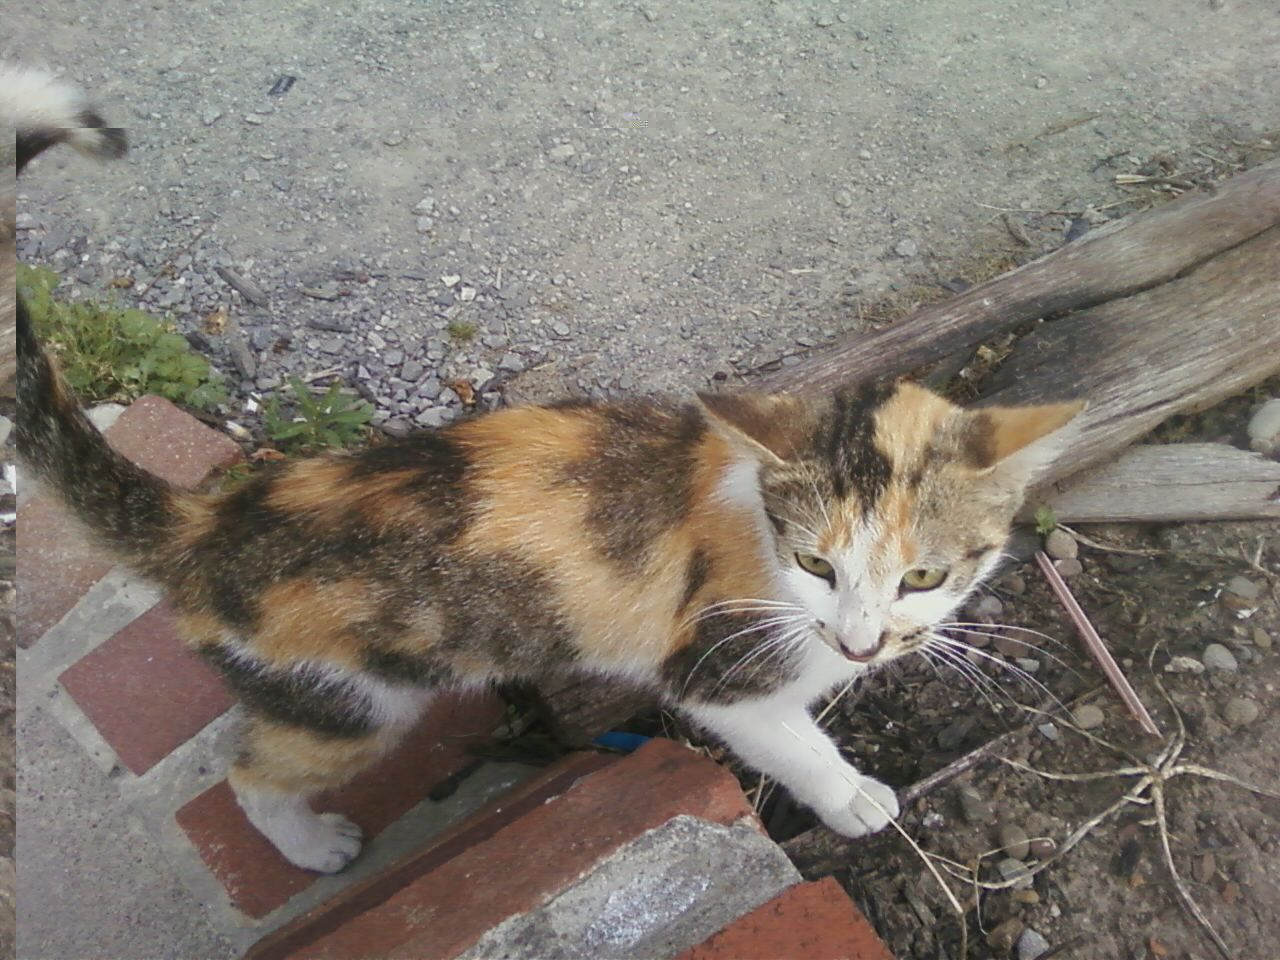 This Stray Cat Needs A Family To Give A Flee Bath And Rabies Shots And That Sort Of Stuff If You Want Her Email Me At Blakesbaby3 Gmail Co Cats Stray Cat Kitty